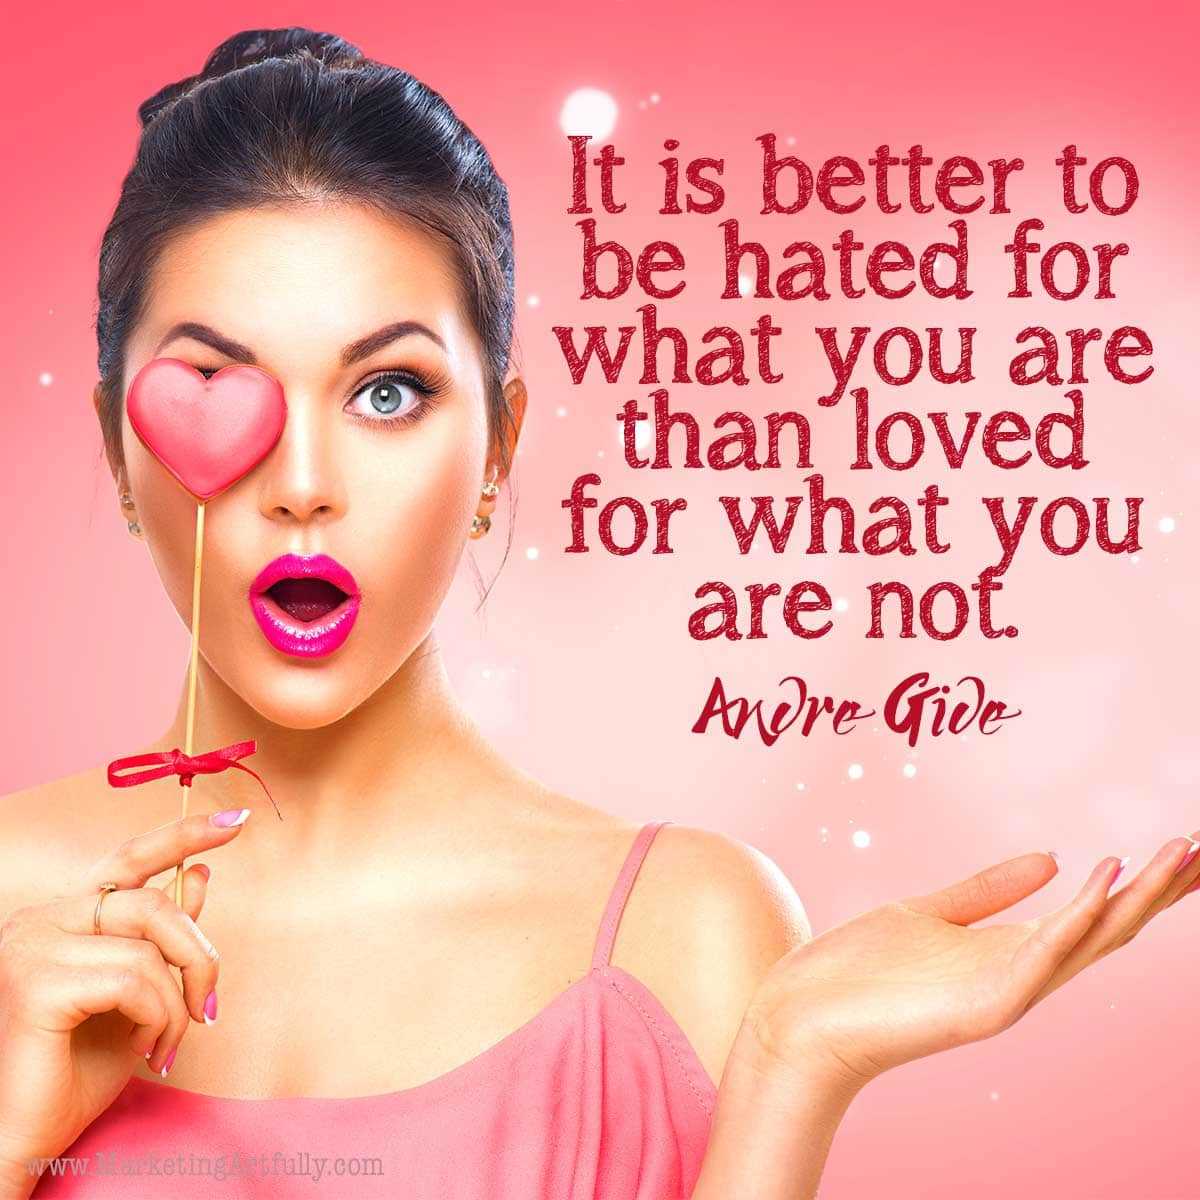 It is better to be hated for what you are than loved for what you are not. Andre Gide Quotes ... Valentines Day and Love Yourself Quote